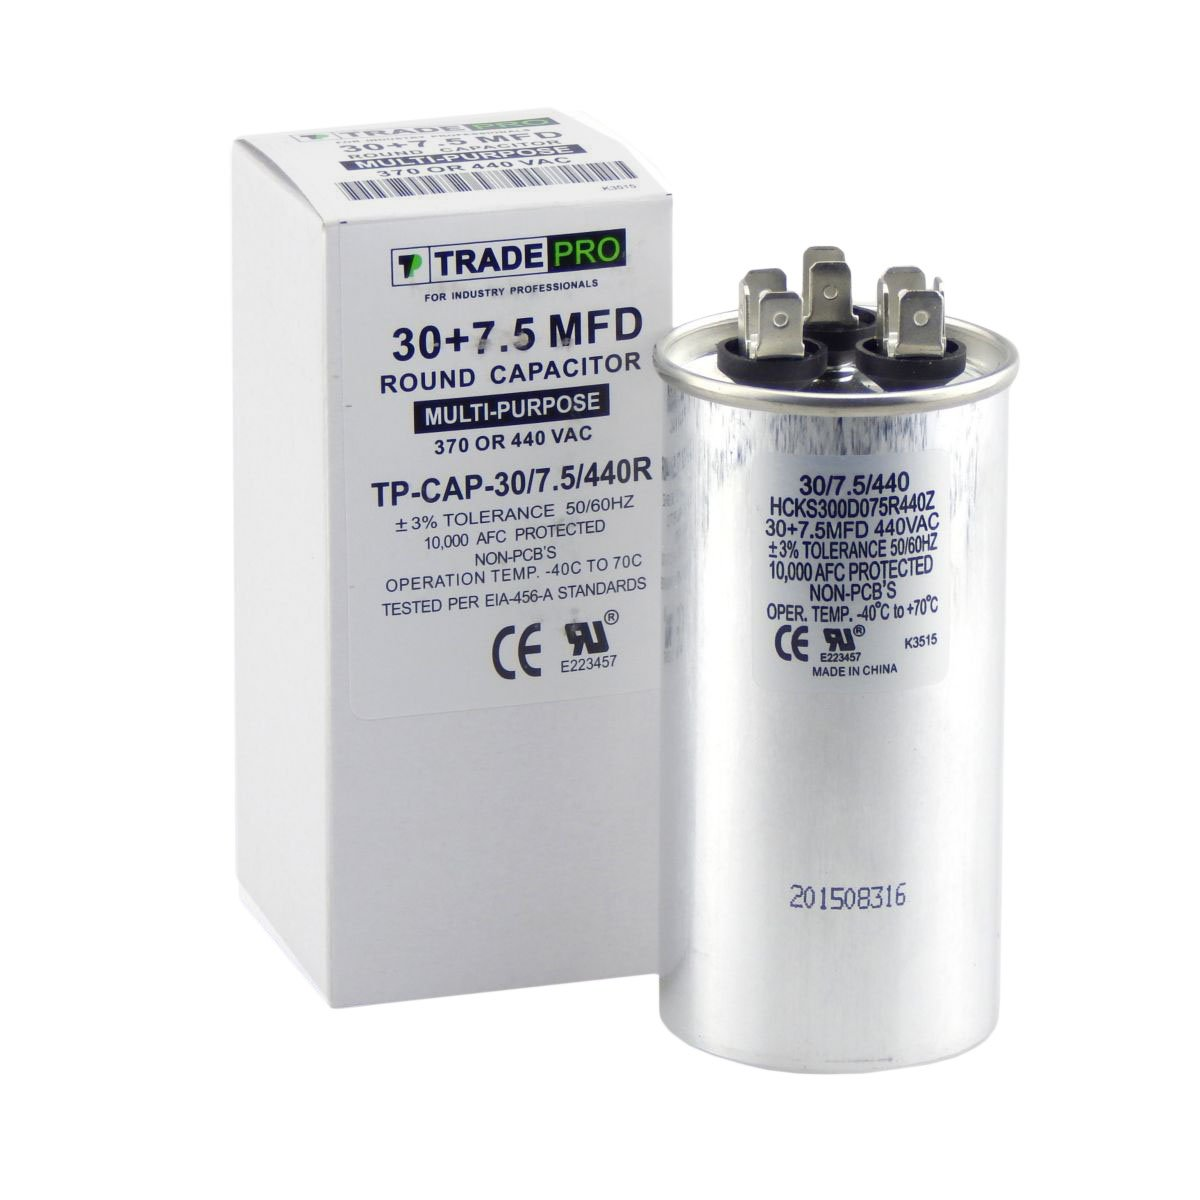 35 + 7.5 mfd Dual Capacitor, Industrial Grade Replacement for Central Air-Conditioners, Heat Pumps, Condenser Fan Motors, and Compressors. Round Multi-Purpose 370/440 Volt - by Trade Pro